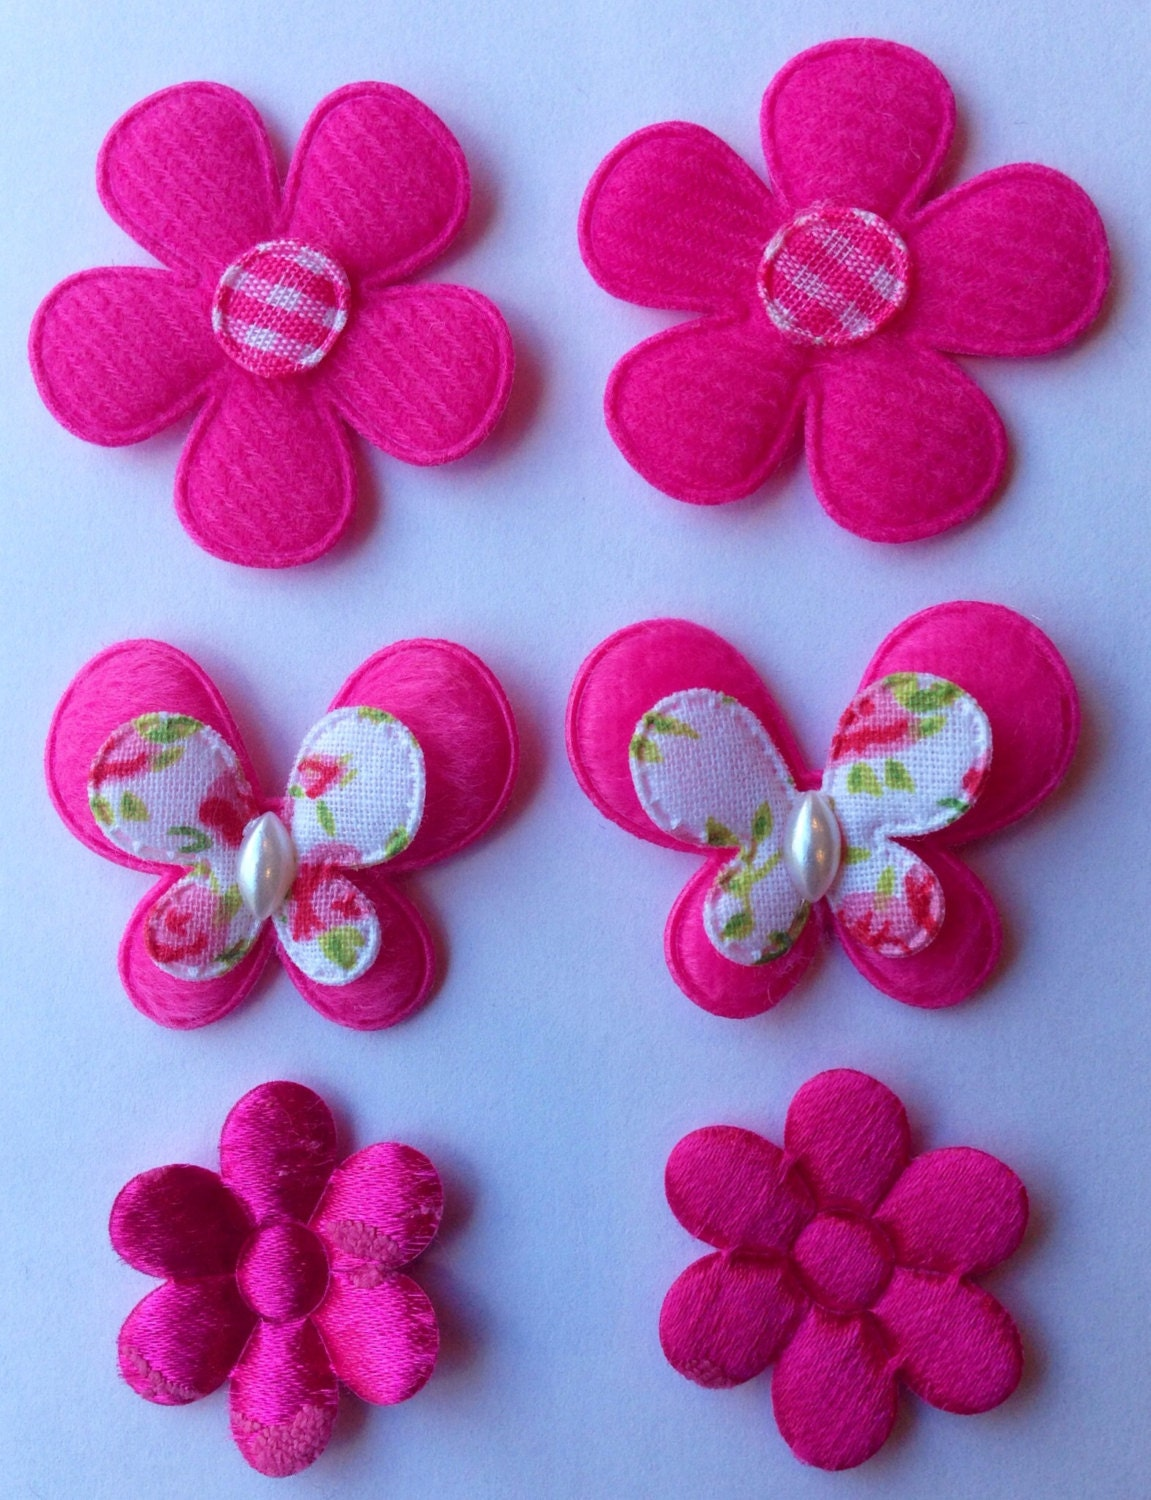 Hot Pink Flower And Butterfly Appliques For Making Your Own Etsy